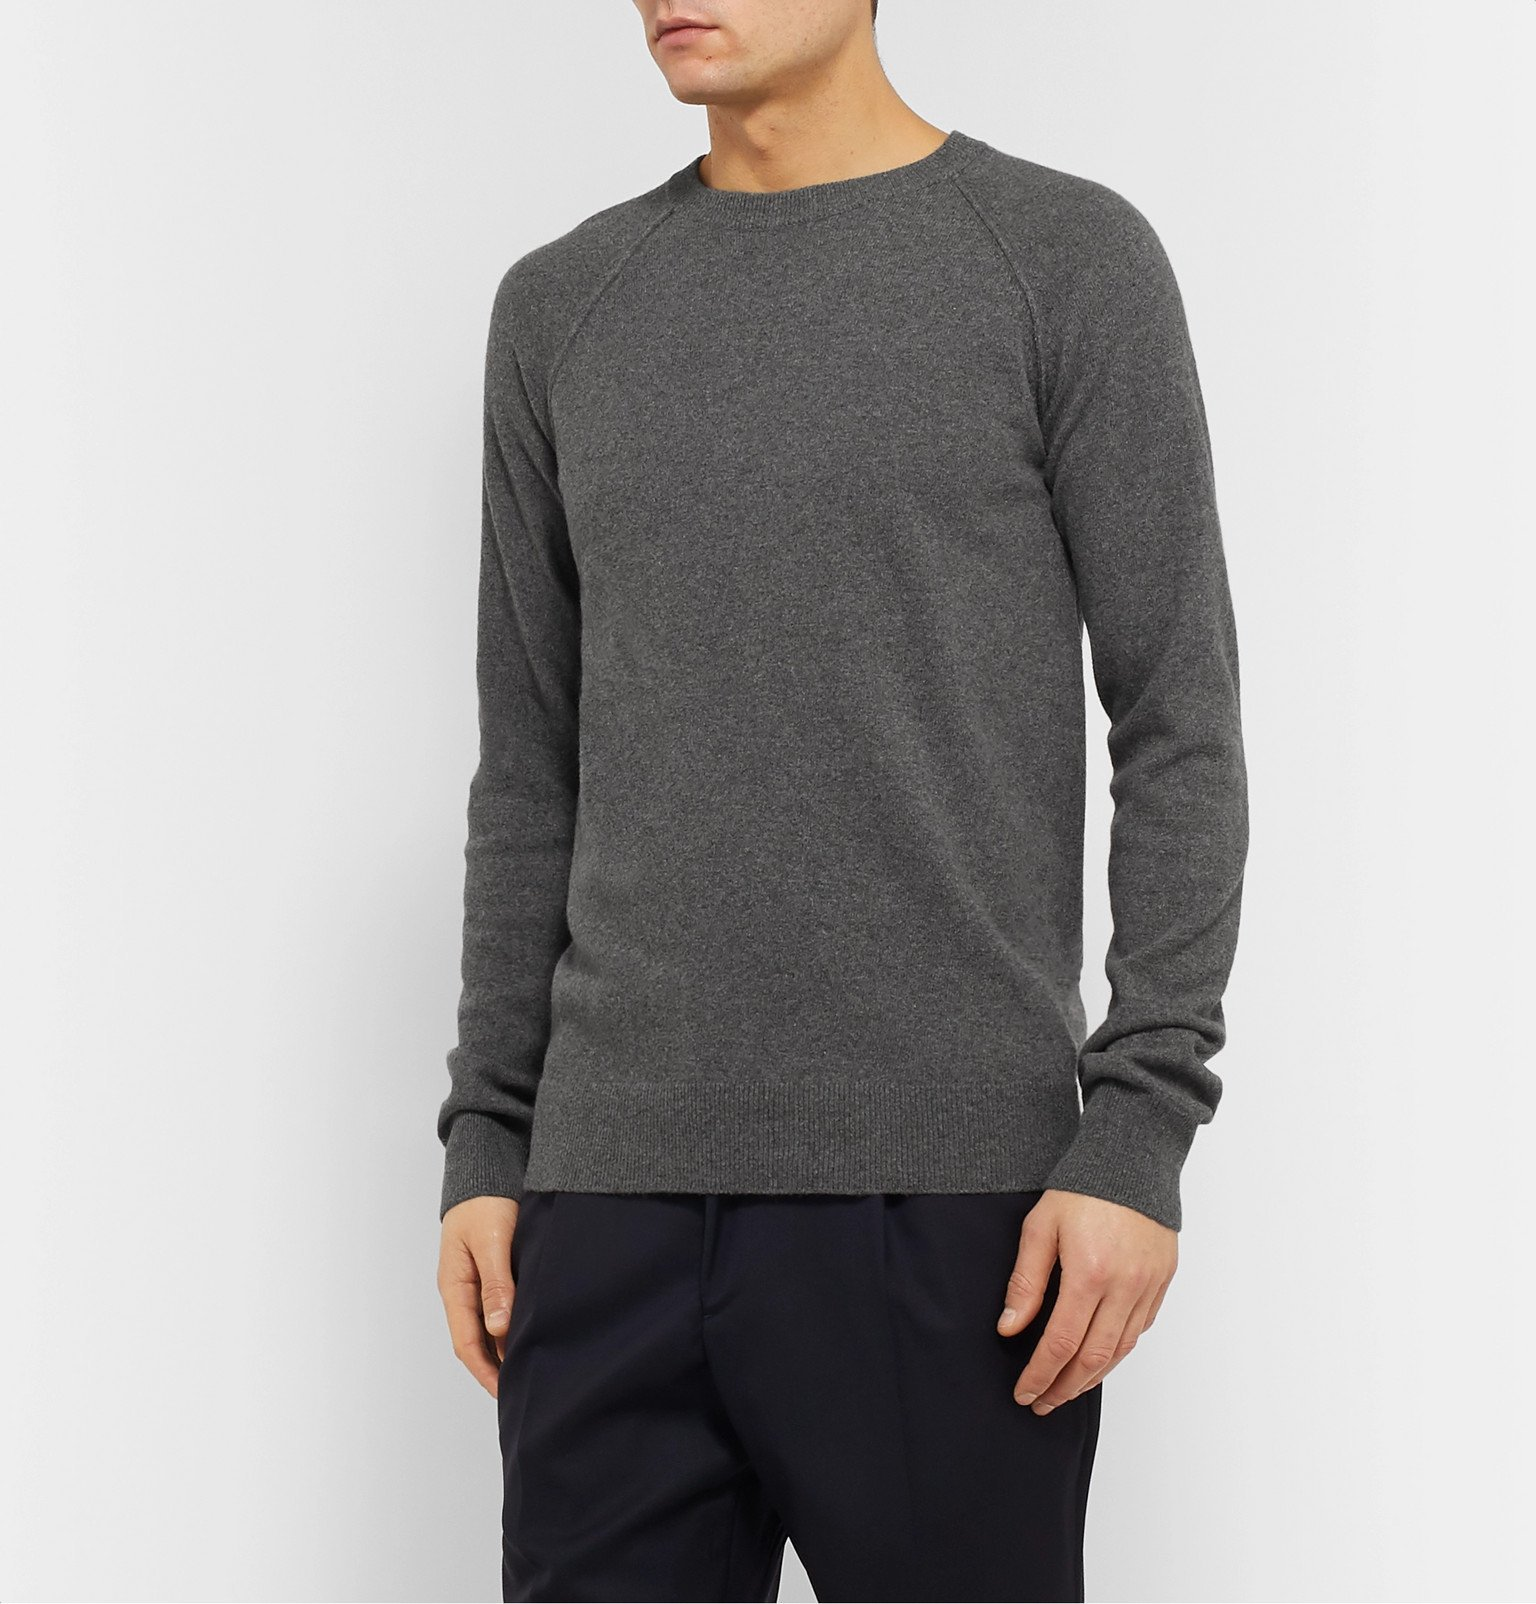 Officine Generale - Mélange Cashmere and Wool-Blend Sweater - Gray